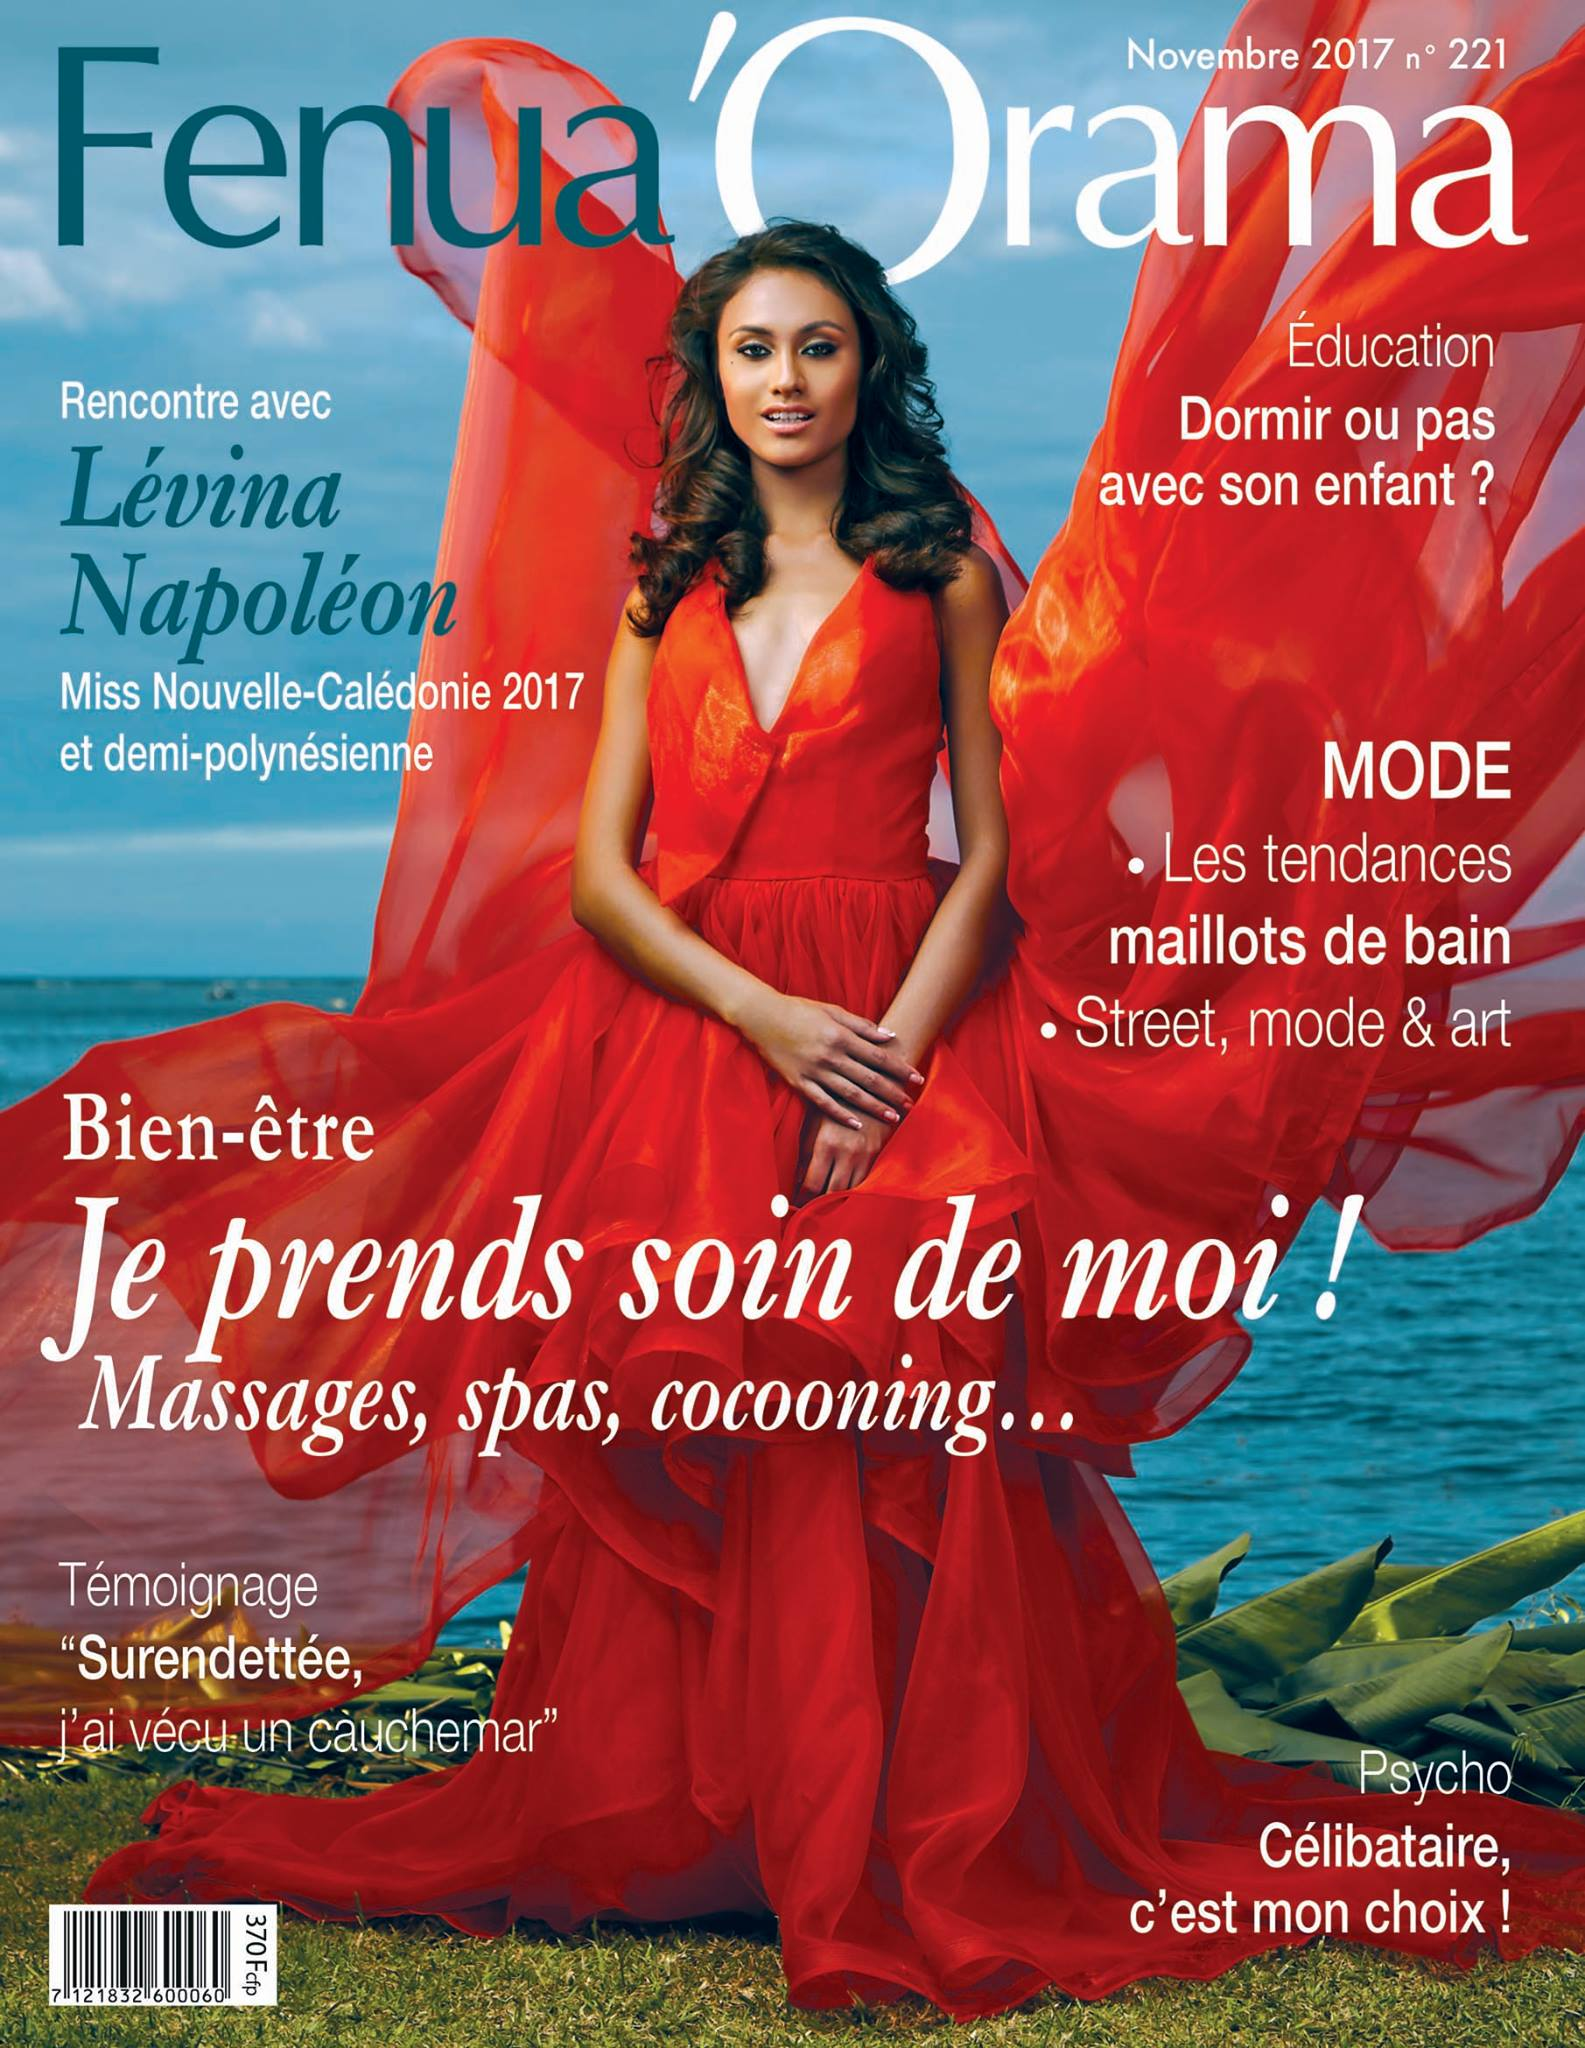 fenua'oramanovembre 2017 - Article based on the new wedding collection by Miel.A Tahiti Mademoiselle M p.13